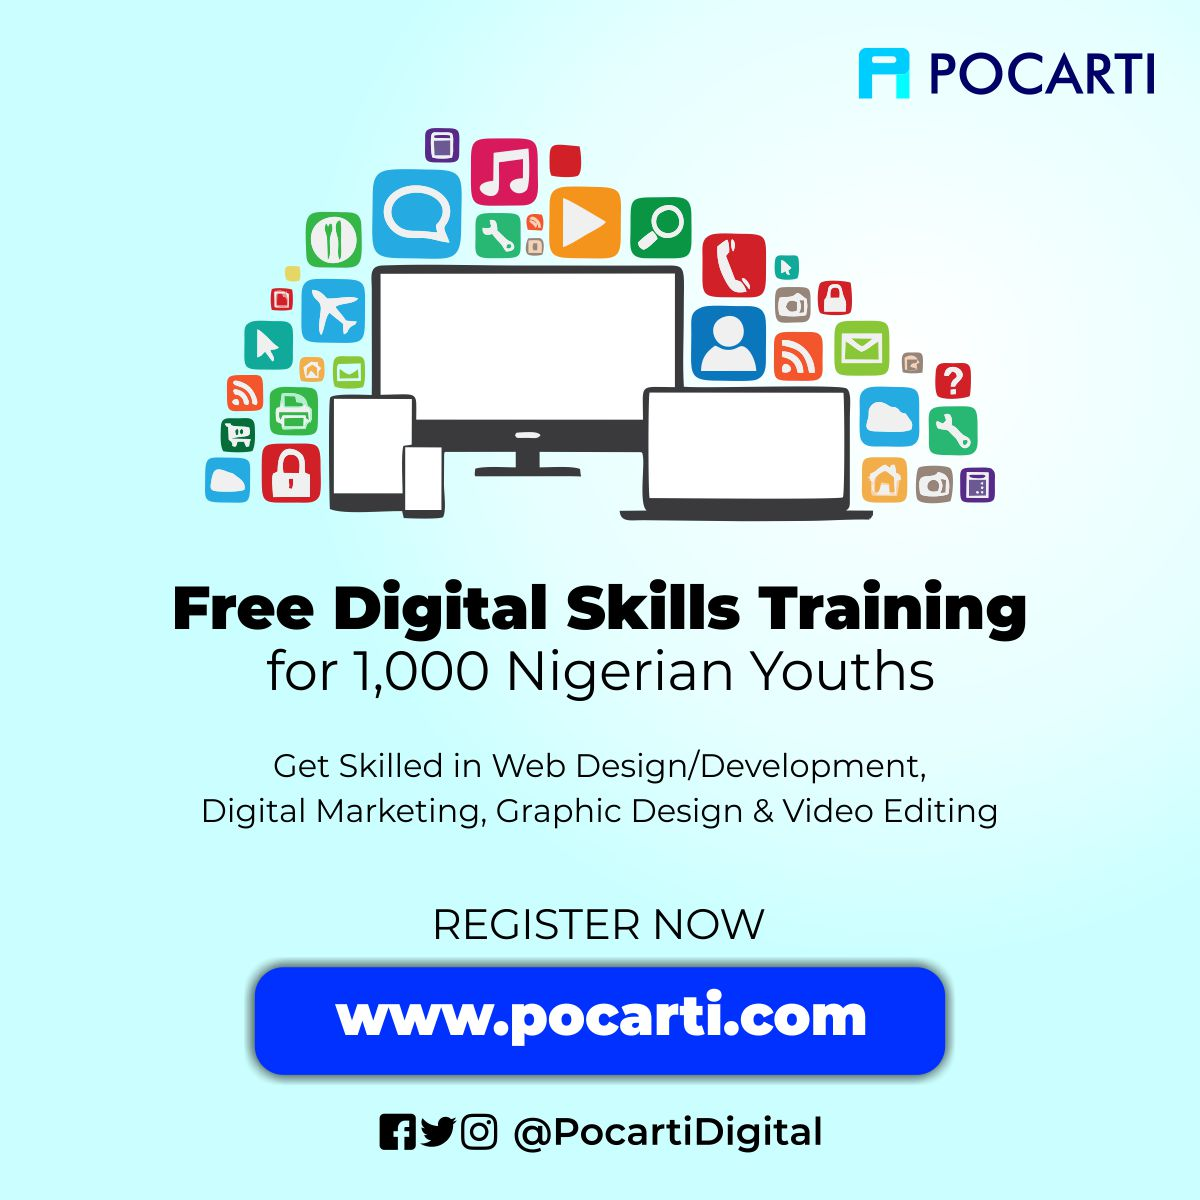 Free Digital Skills Training for 1,000 Nigerian Youths - Pocarti Digital Nigeria